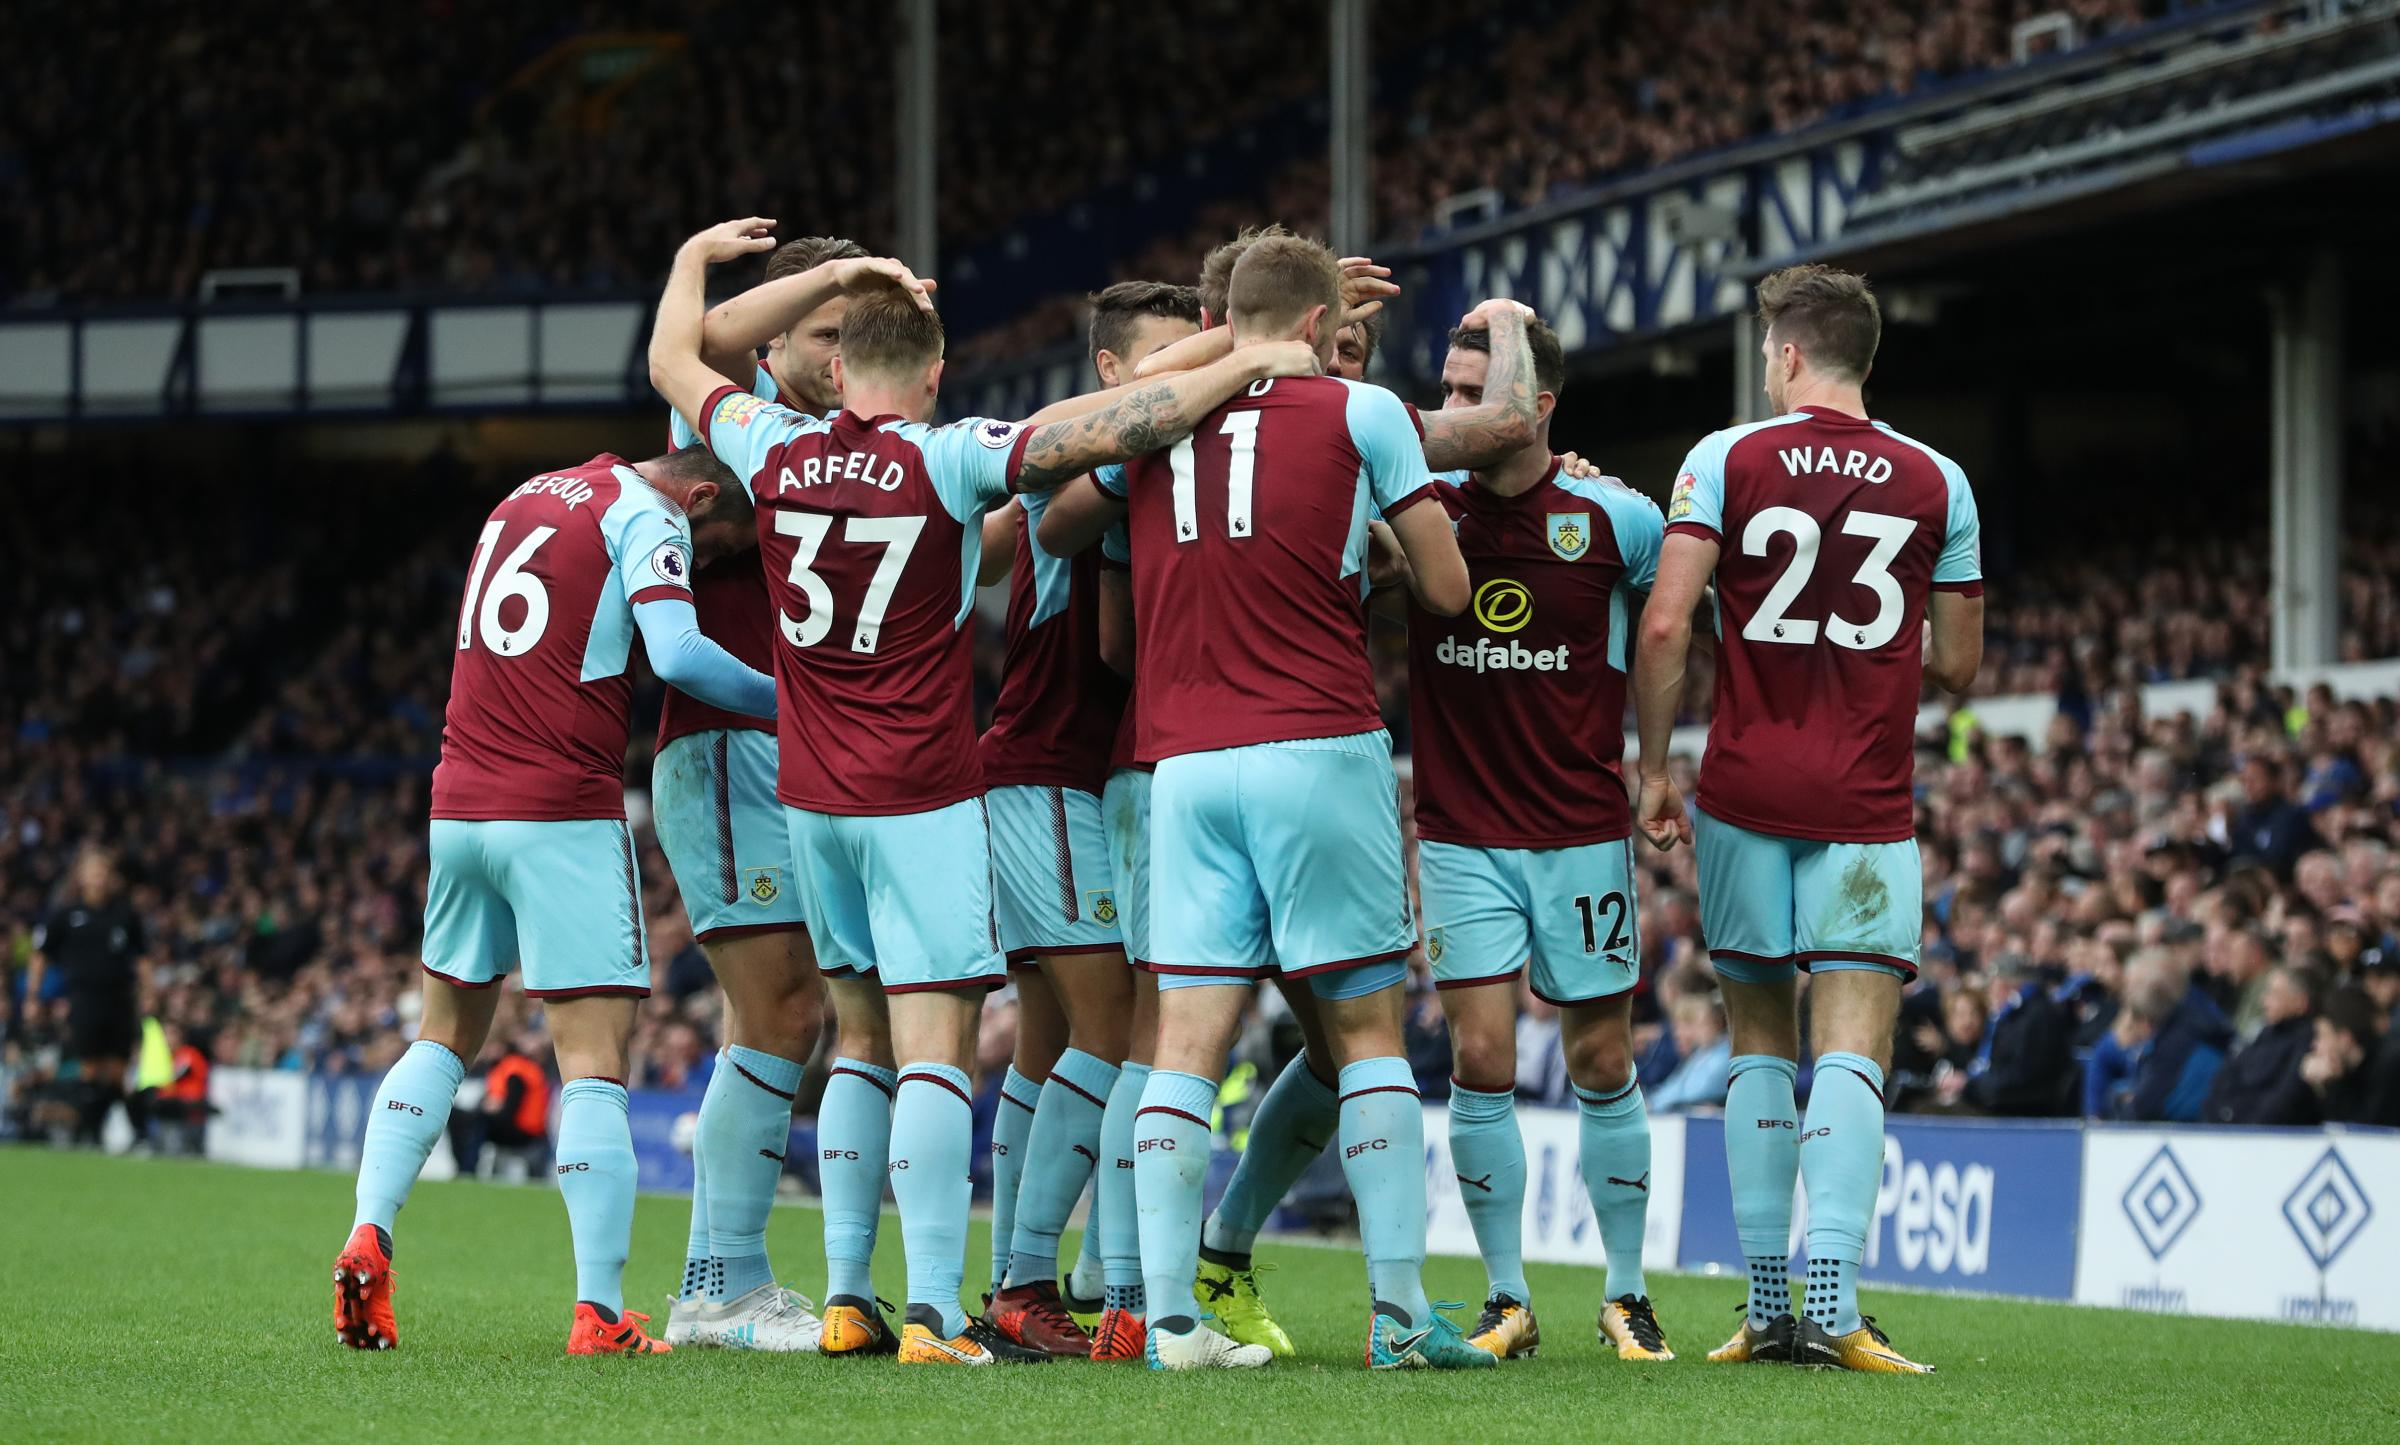 Burnley's success this season is being enjoyed by the neutrals, according to Sean Dyche